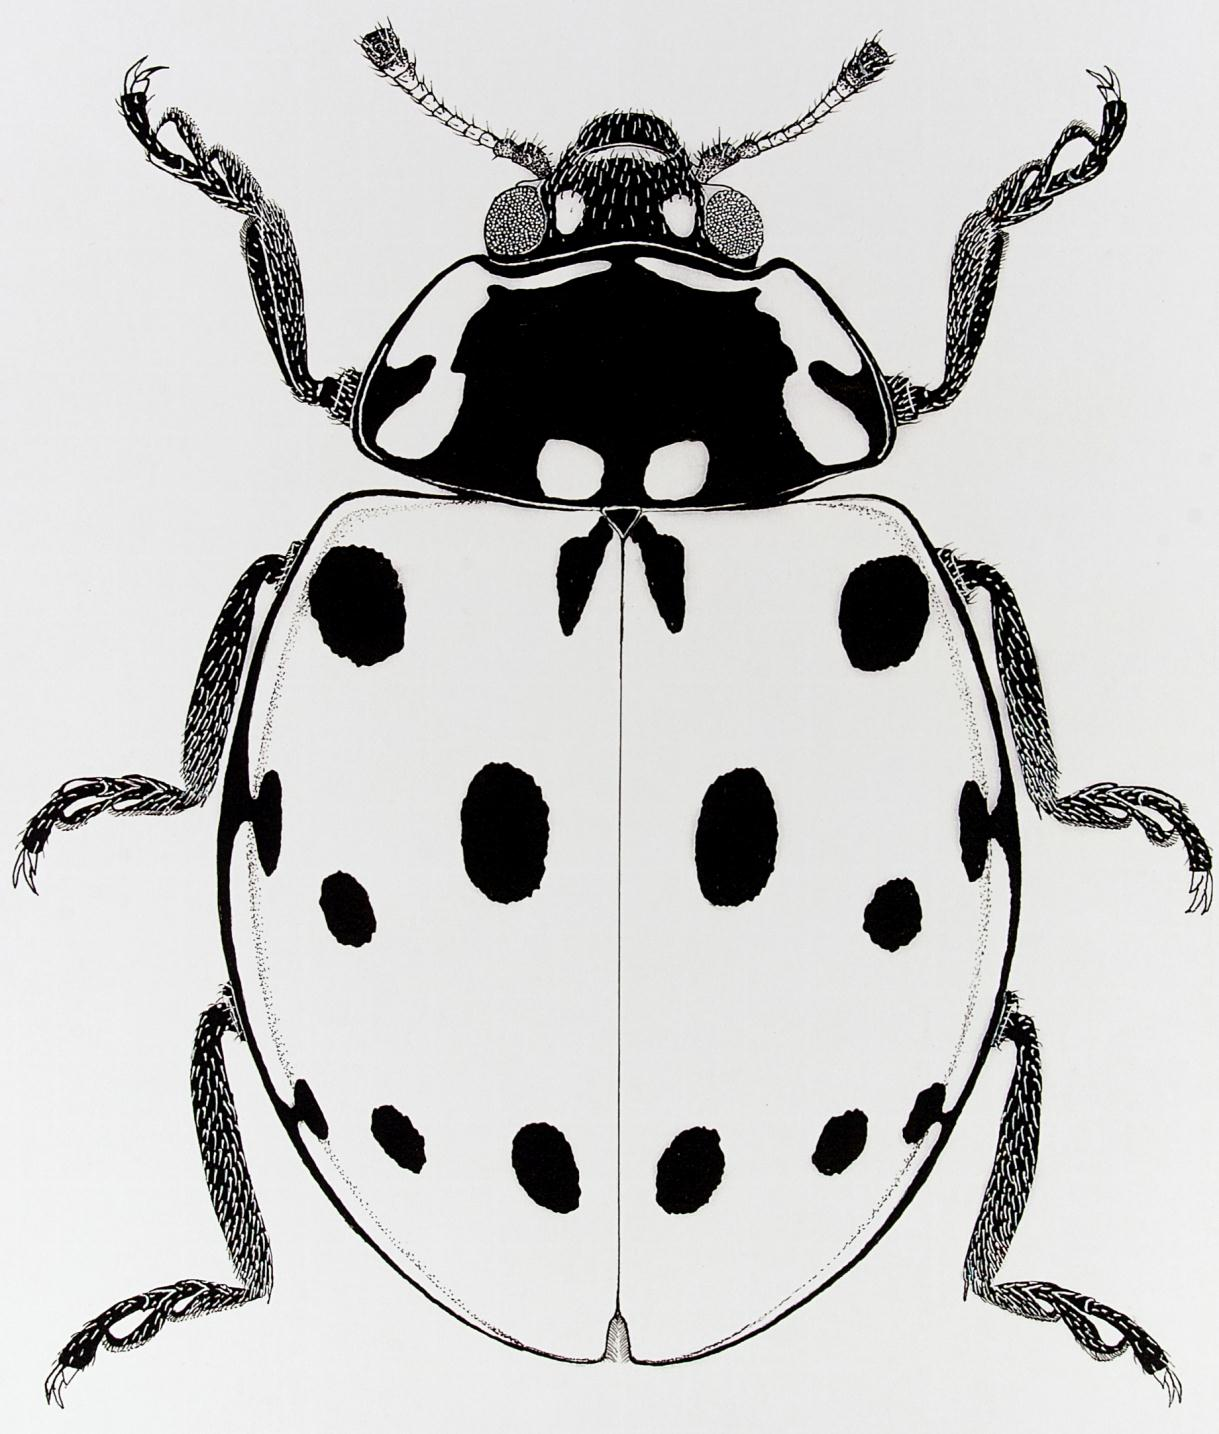 Drawn lady beetle Collections: Entomological Coleoptera drawing for